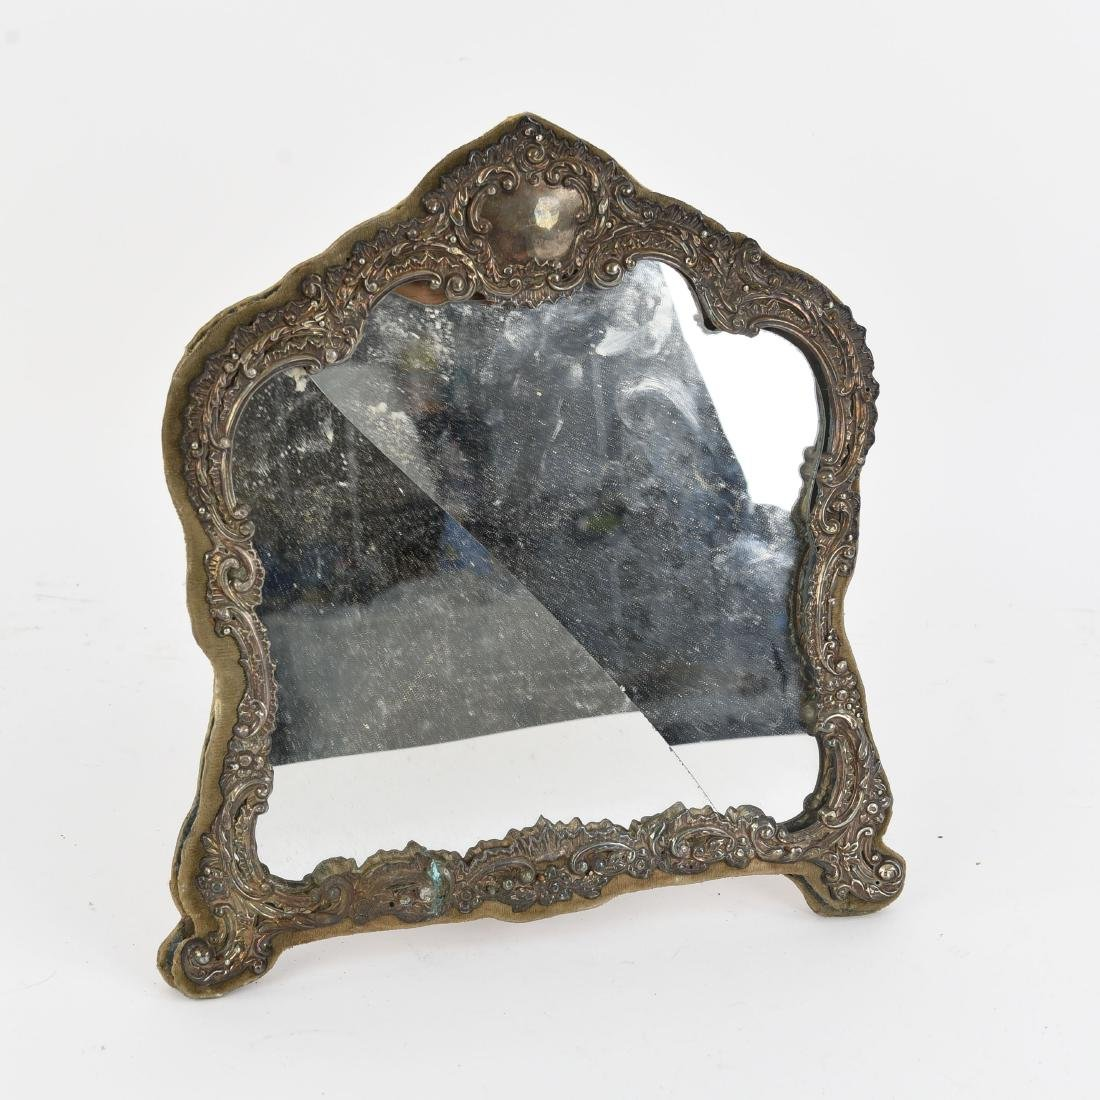 SILVER REPOUSSE VANITY MIRROR